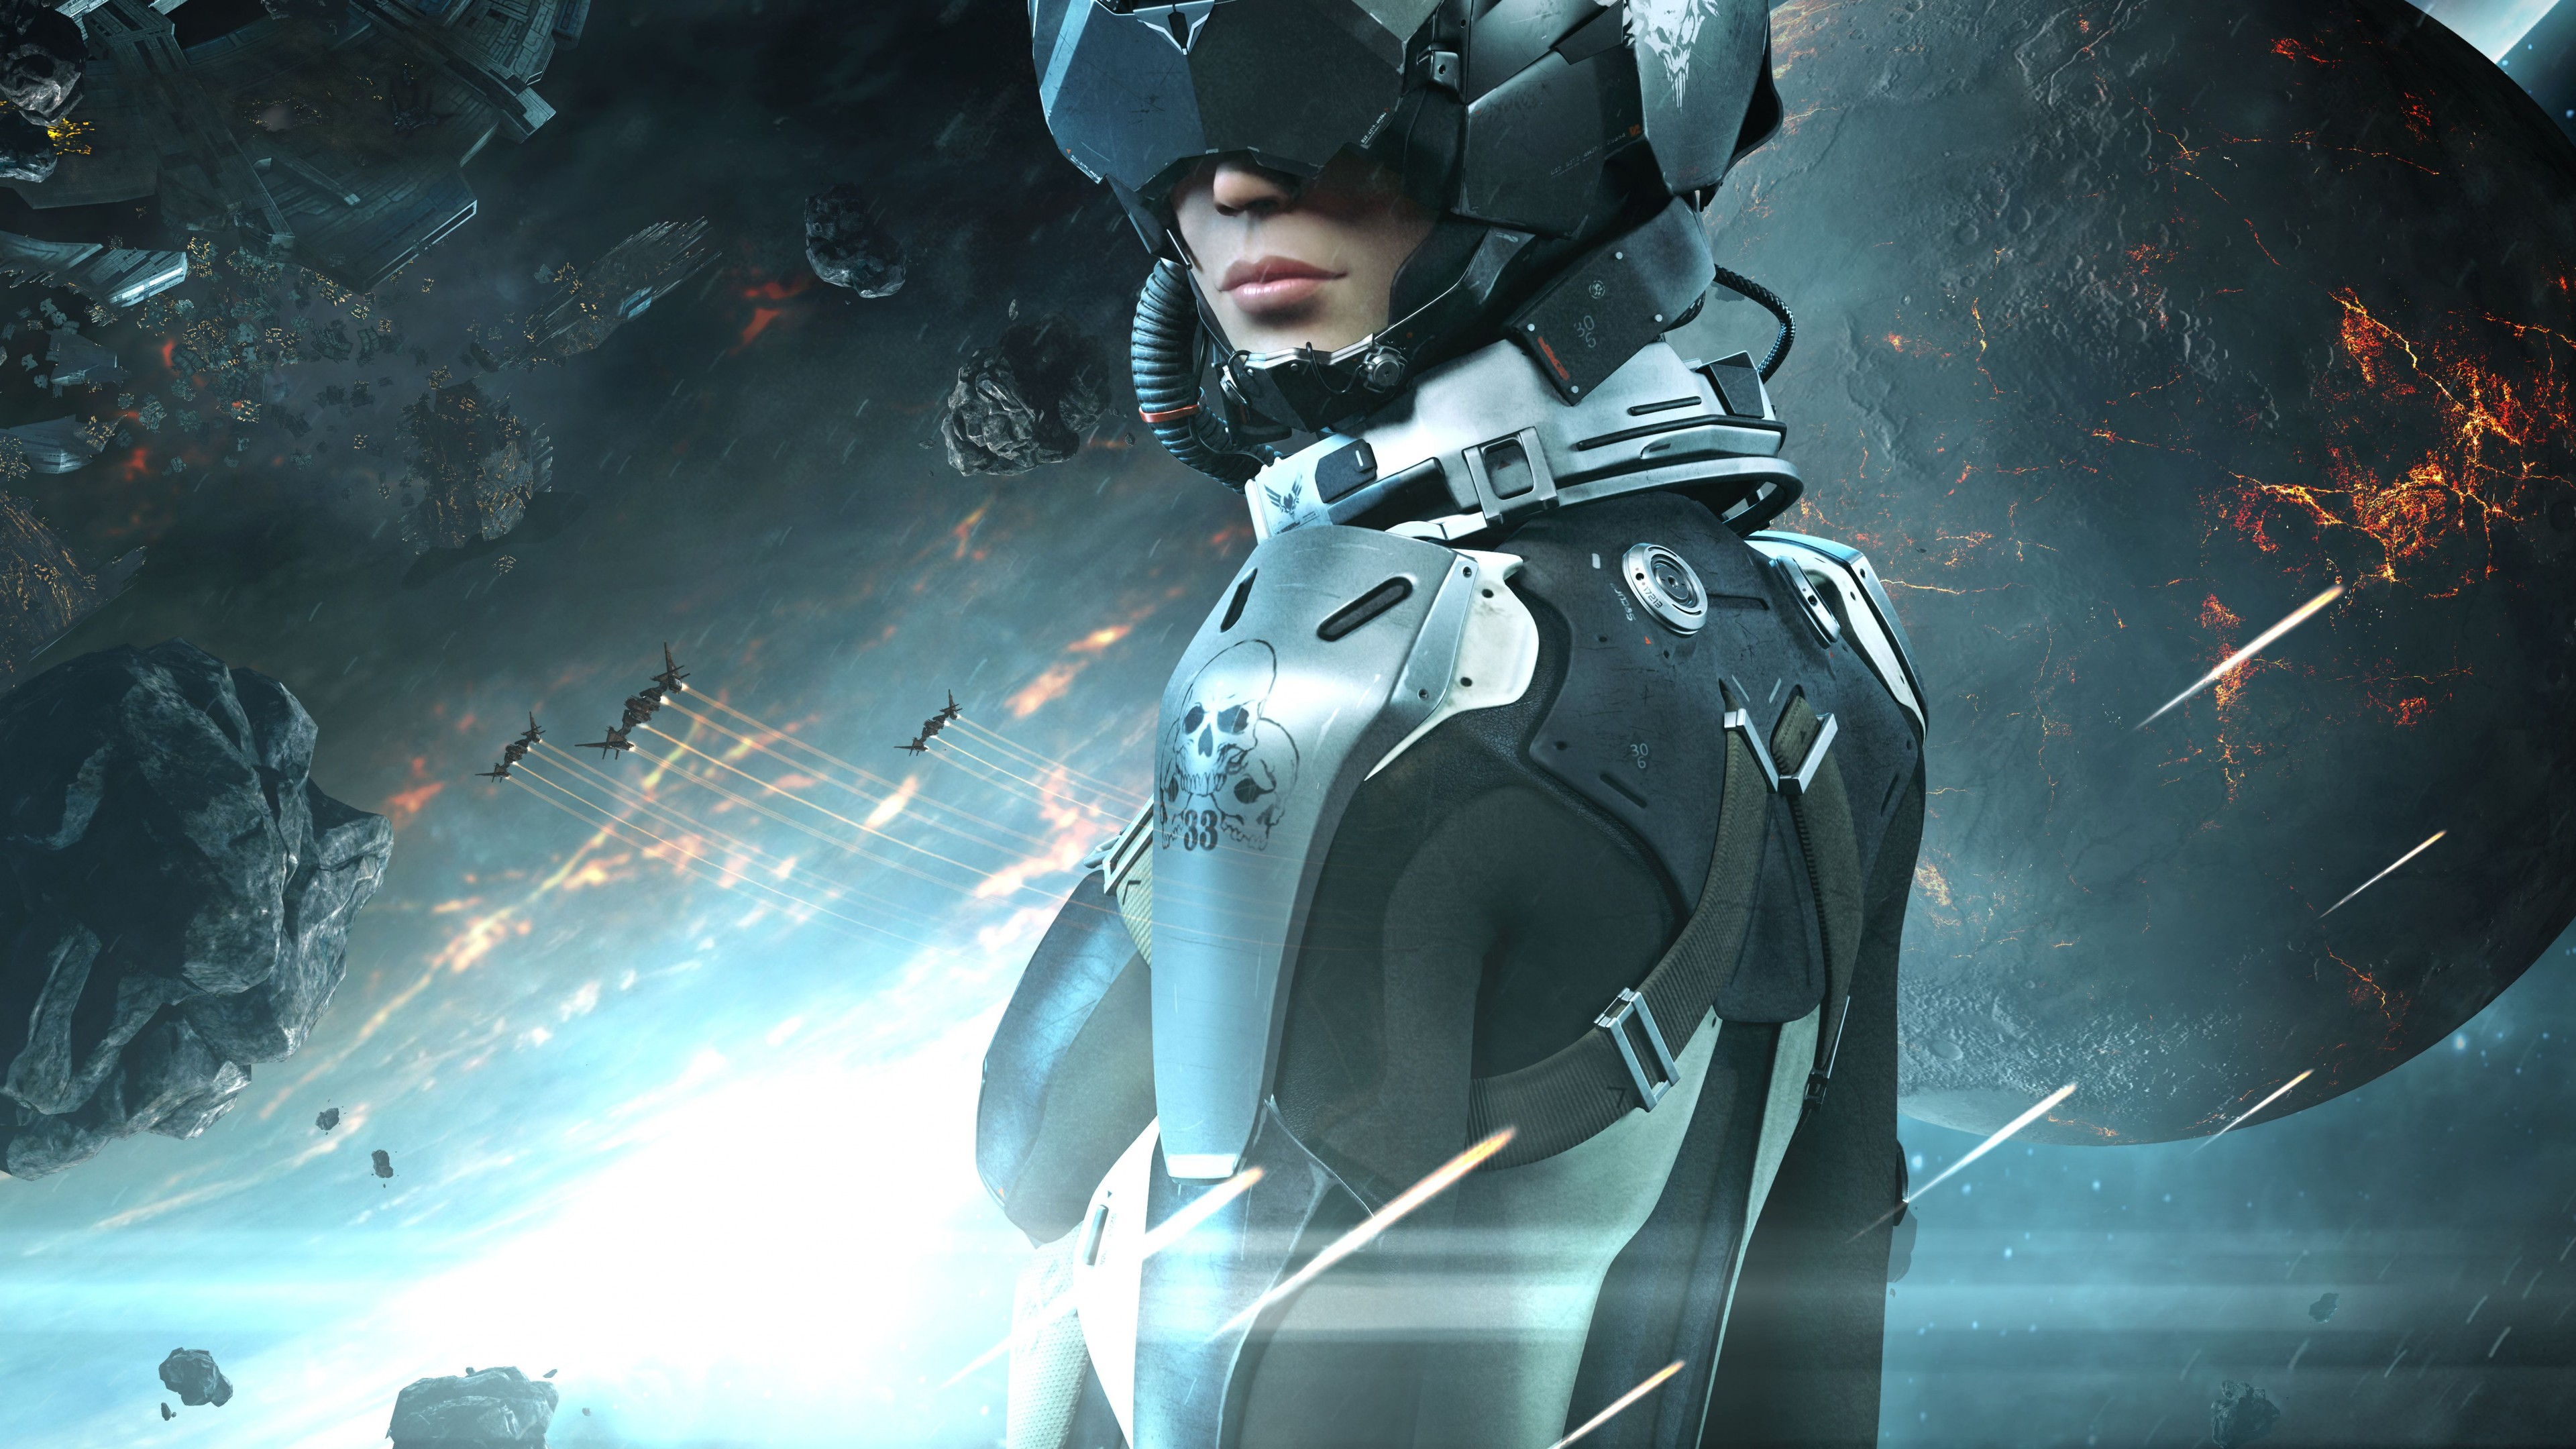 Ps4 Games Hd Wallpapers Wallpaper Eve Valkyrie Best Games 2015 Game Space Sci